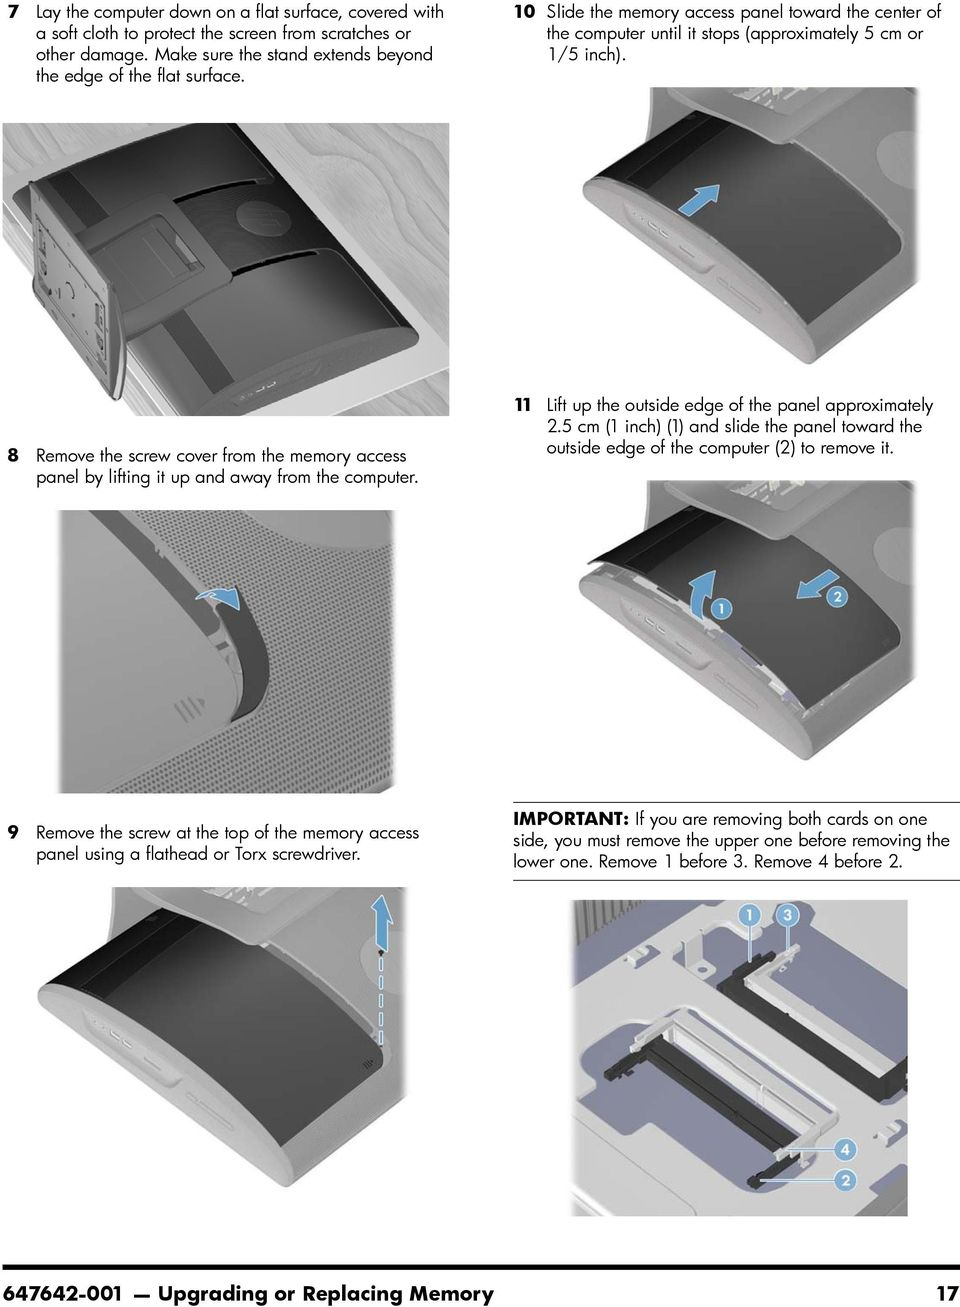 8 Remove the screw cover from the memory access panel by lifting it up and away from the 11 Lift up the outside edge of the panel approximately 2.